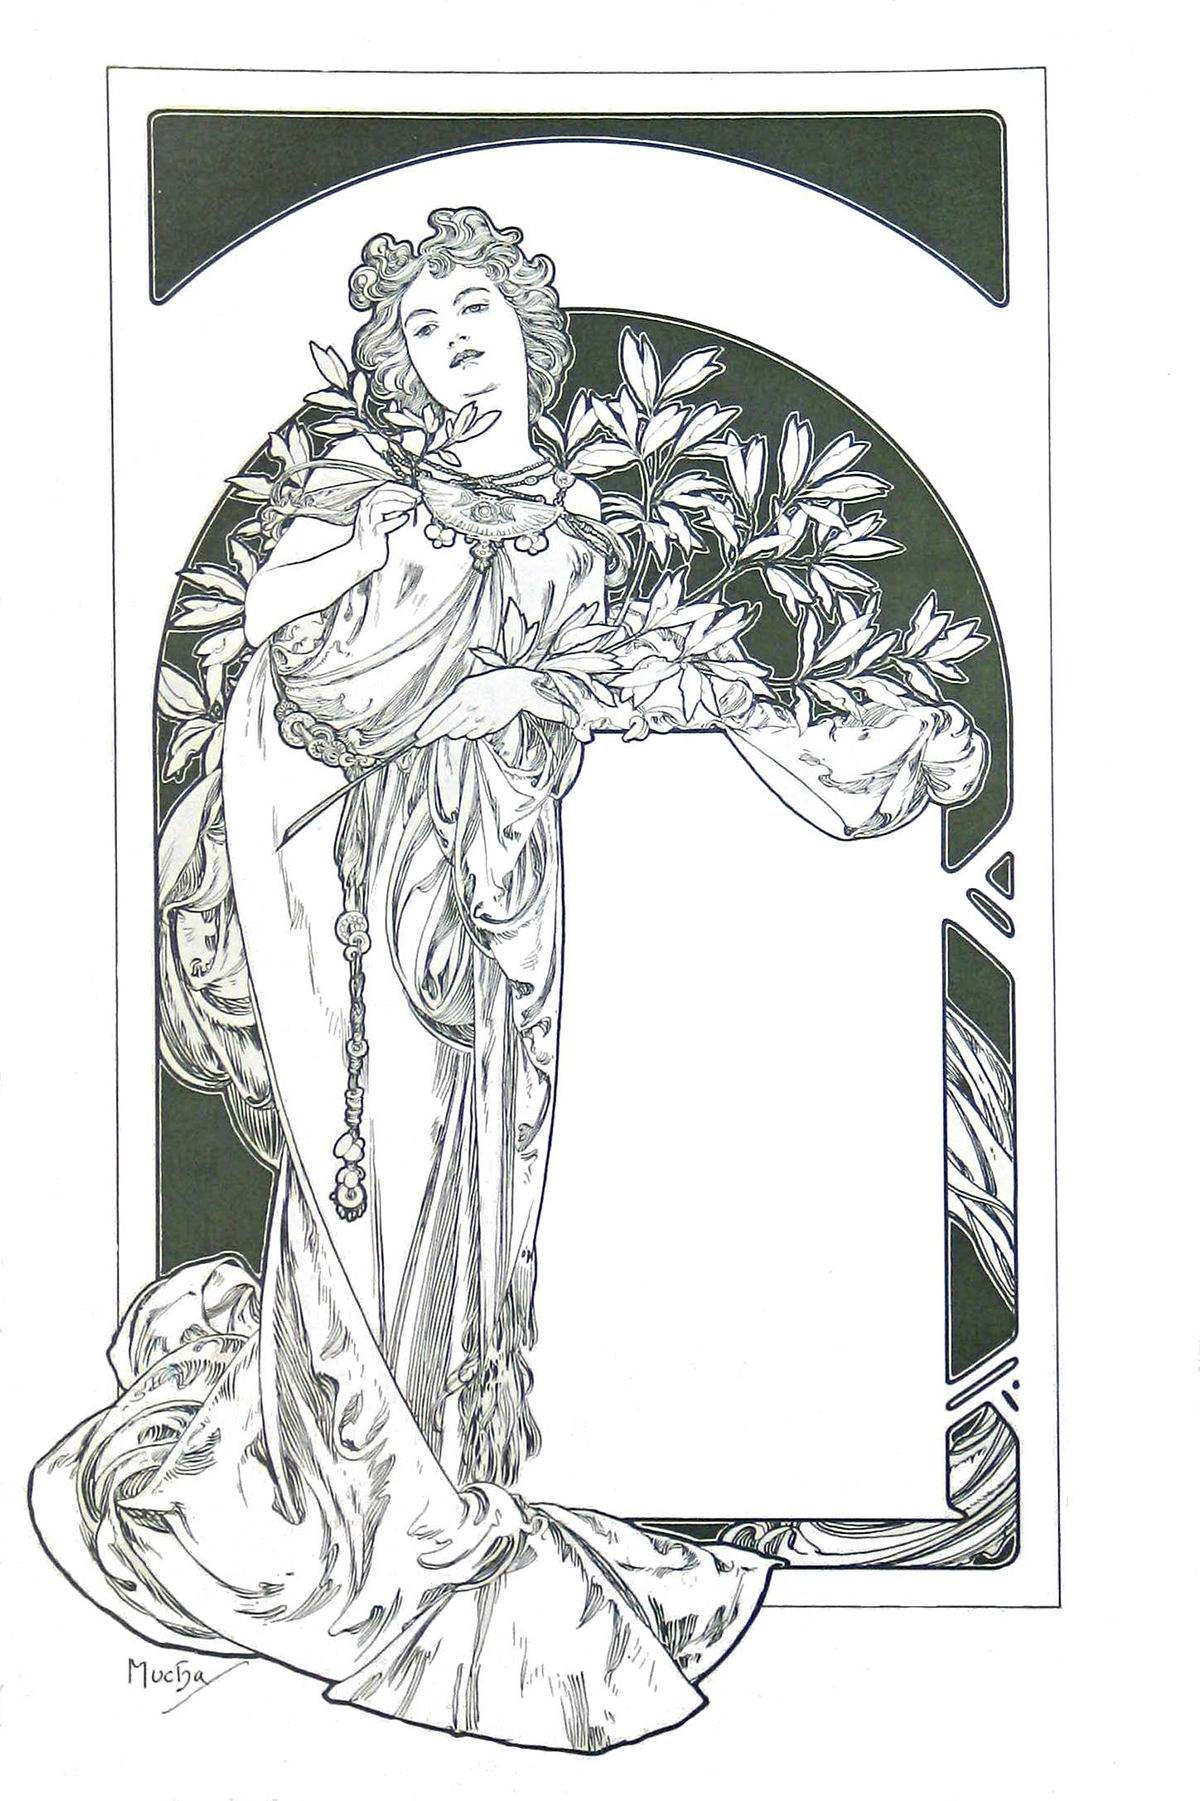 A coloring page of a woman.